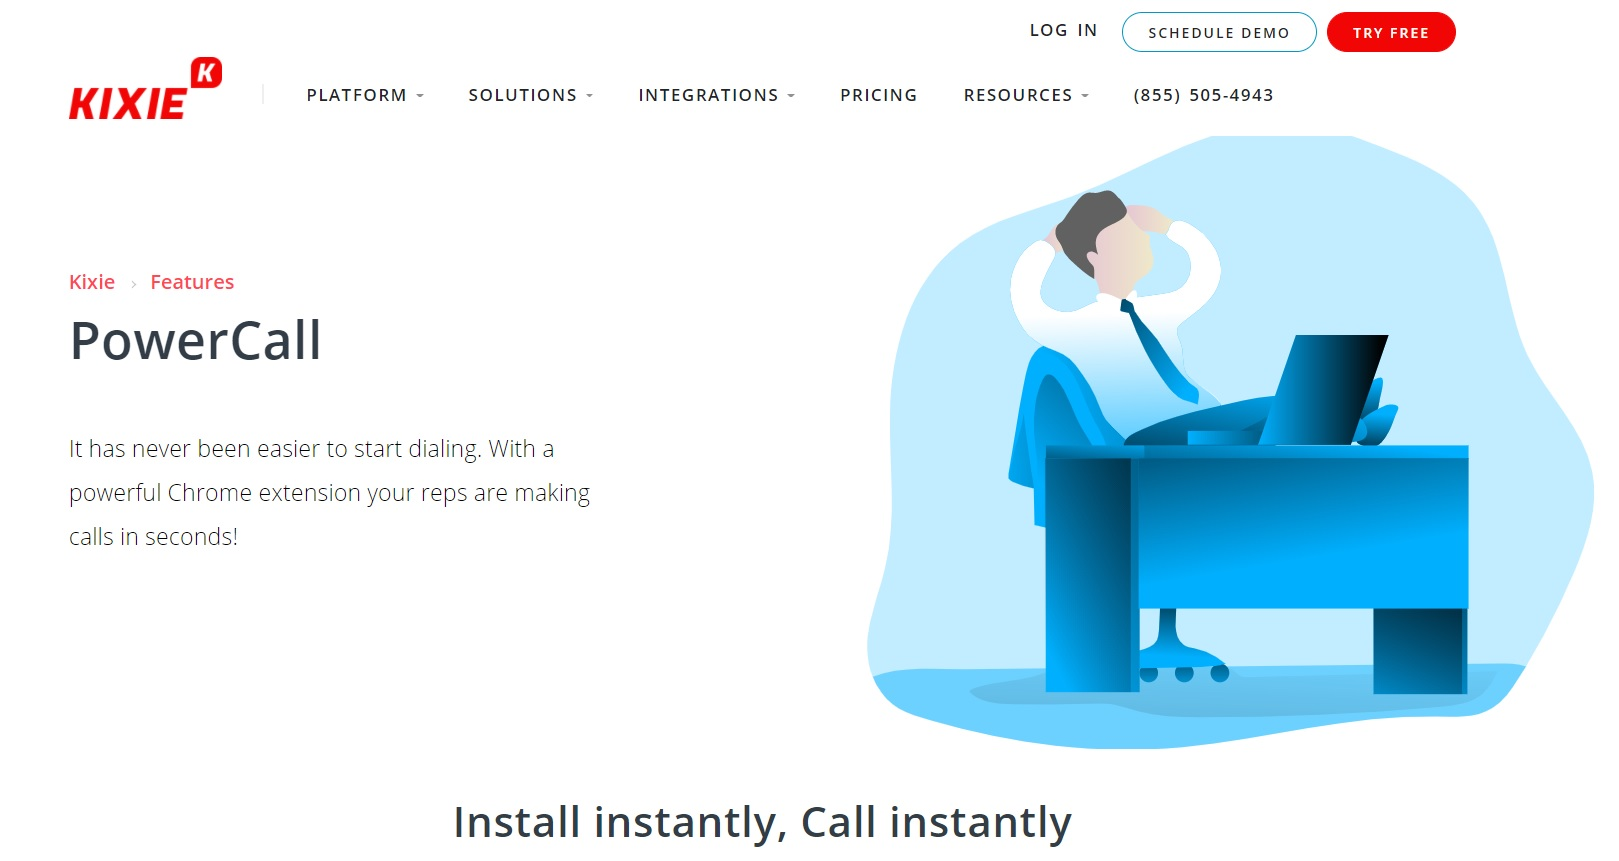 The landing page screenshot of Kixie PowerCall, one of the cold calling tools mentioned in the blog post.